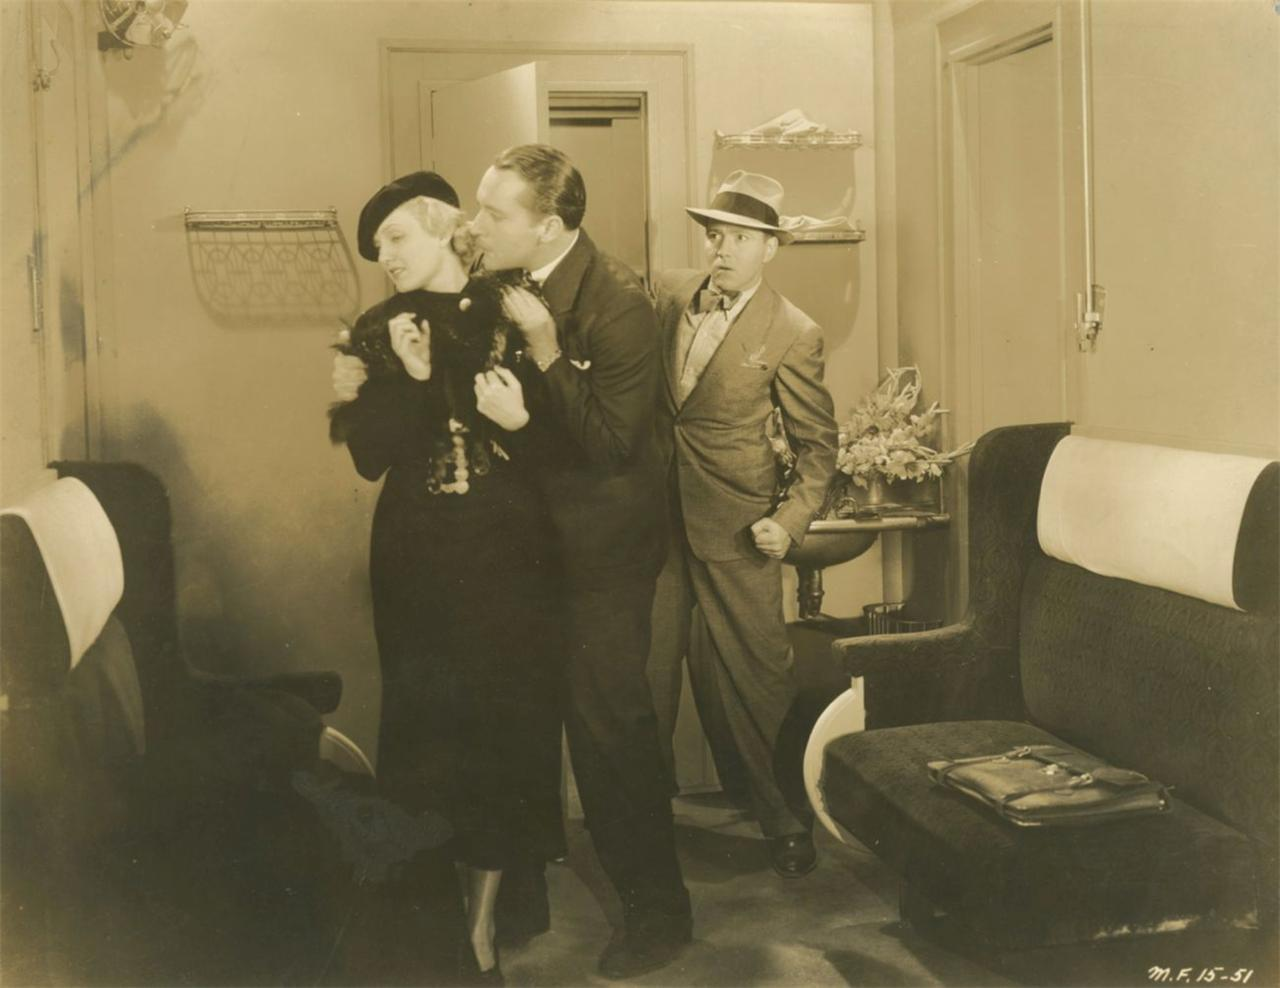 Paul Porcasi, Peggy Shannon, and Ray Walker in The Devil's Mate (1933)